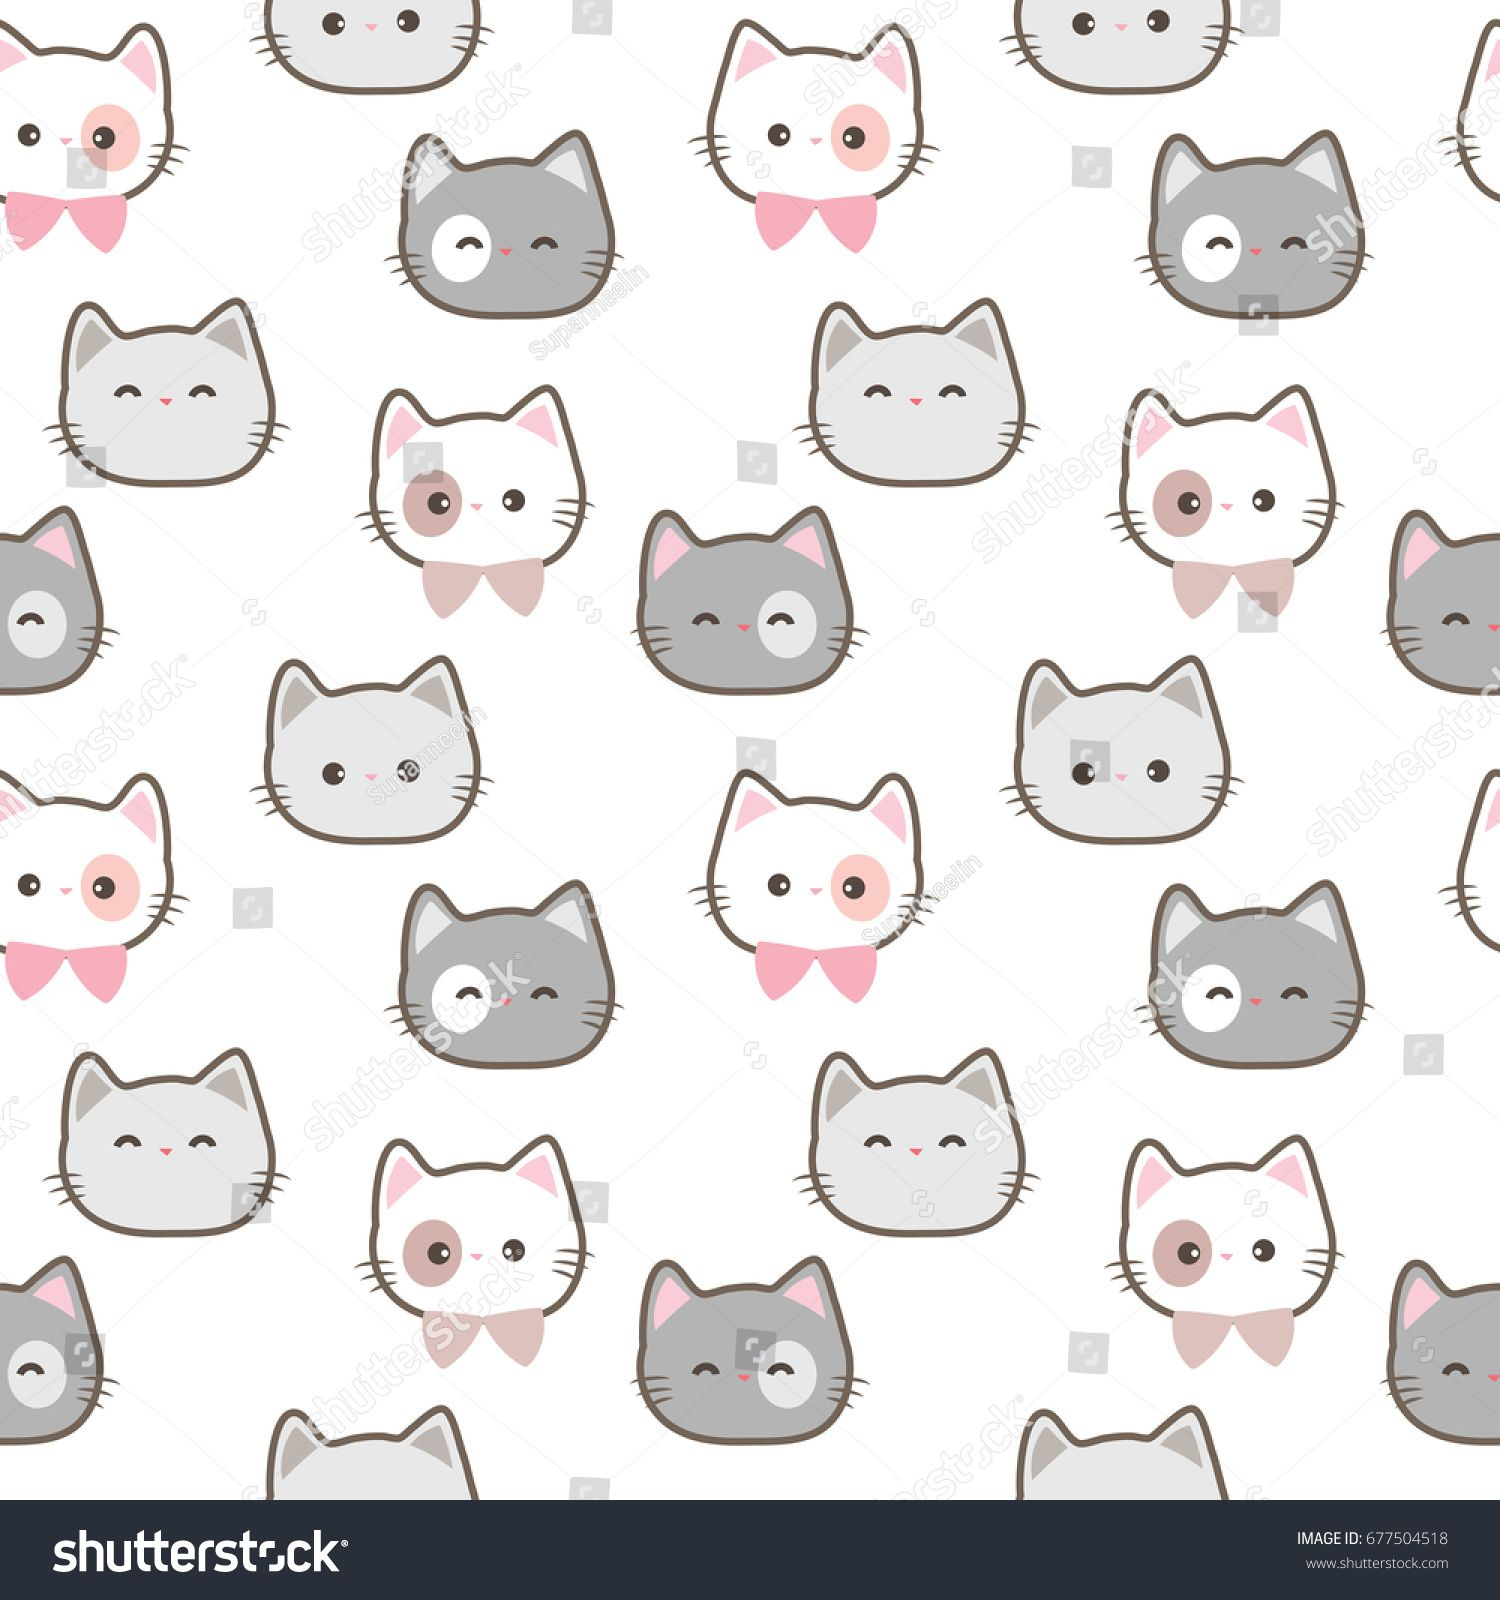 Seamless Pattern Of Cute Cartoon Cat Face On White Background